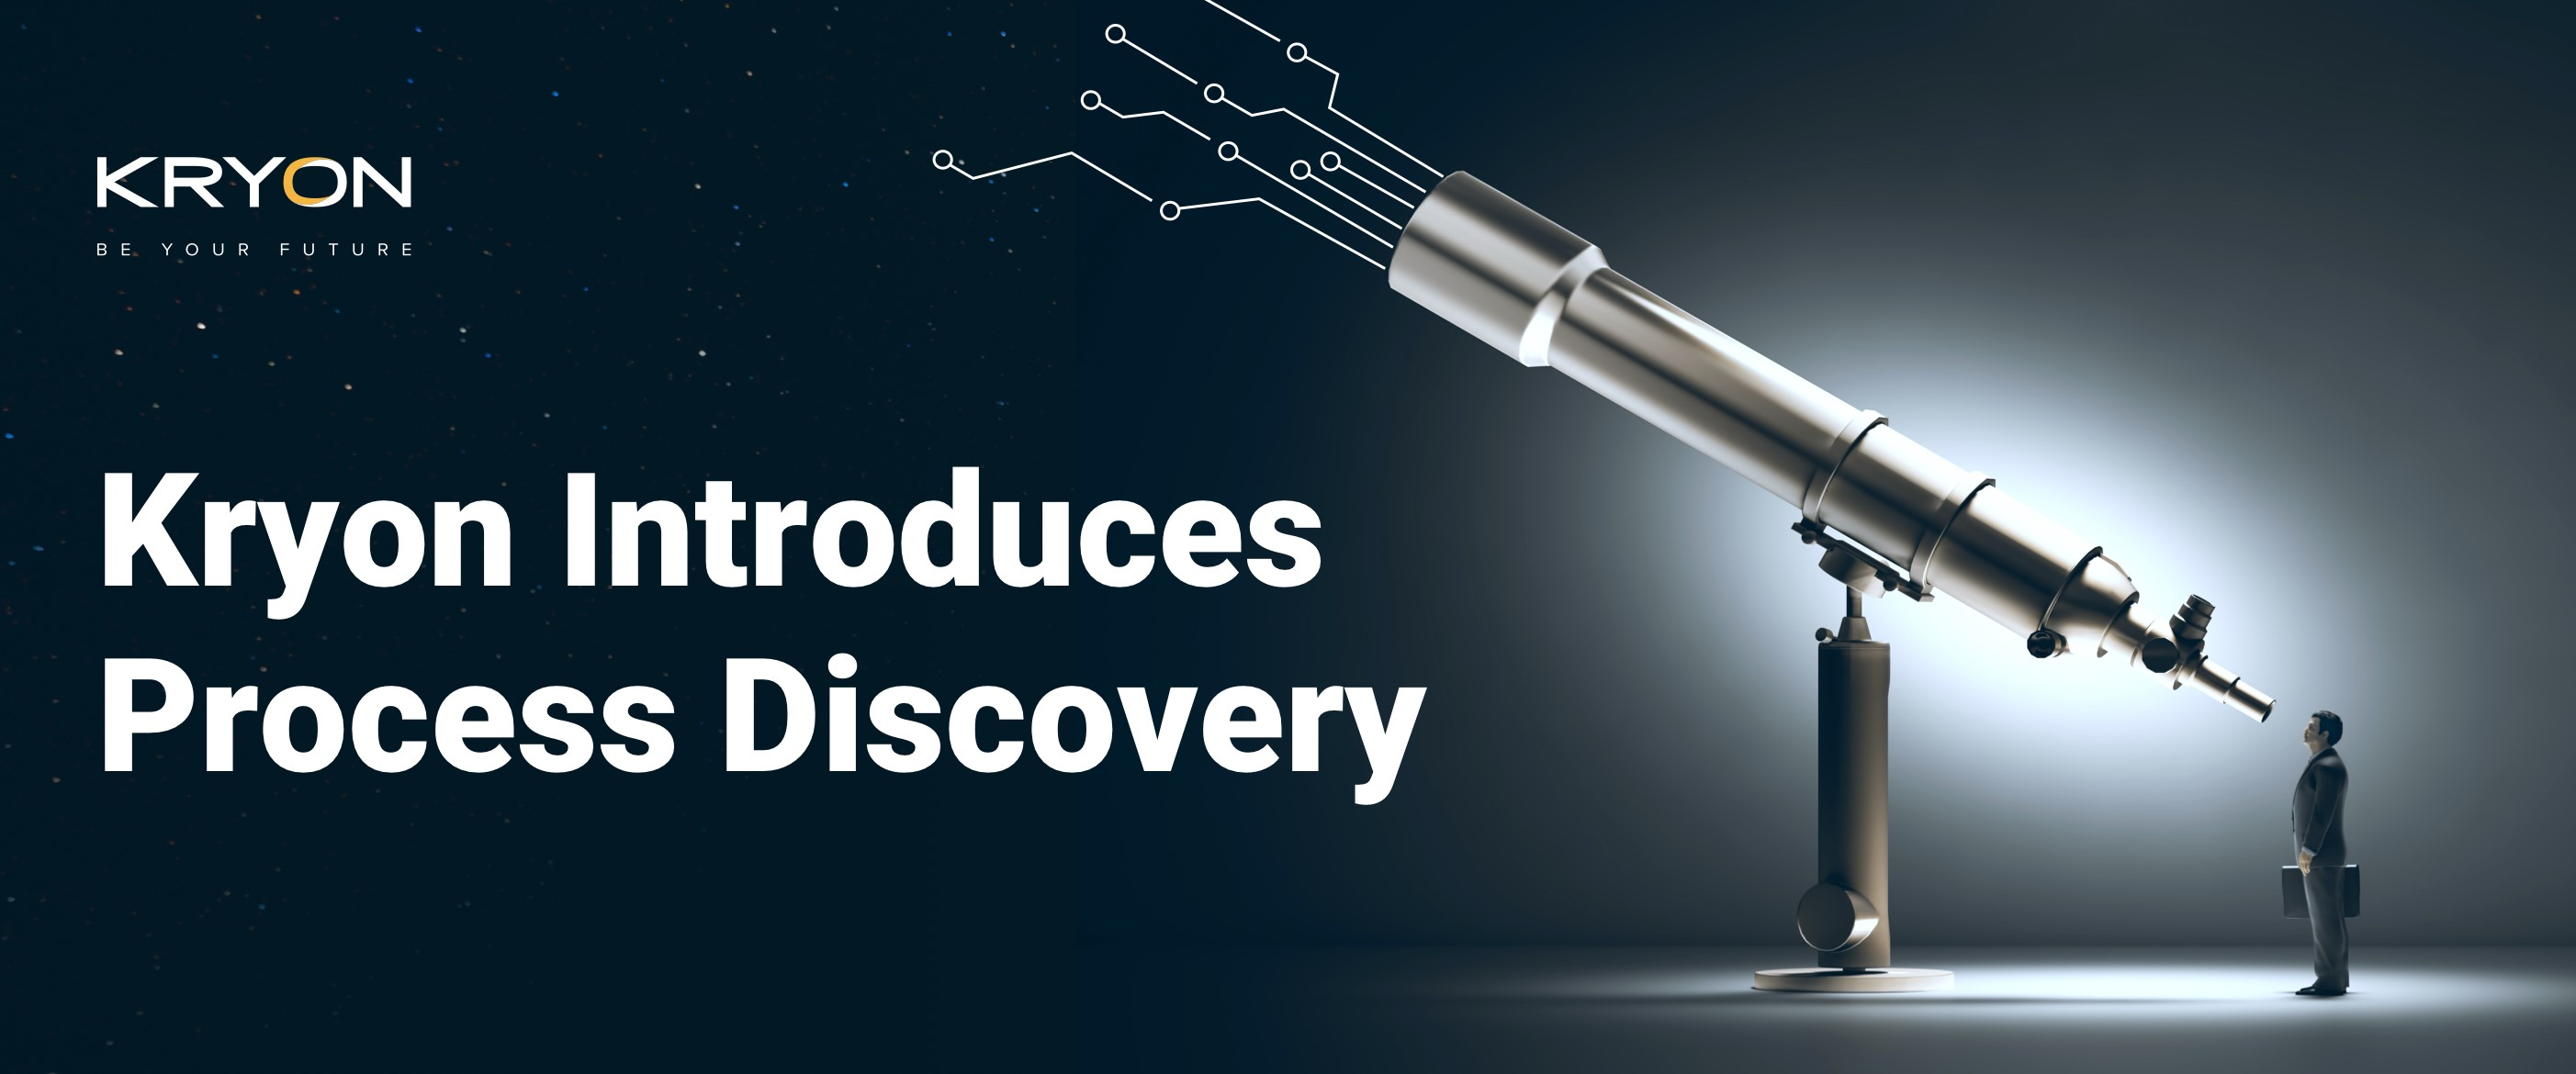 kryon-introduces-process-discovery